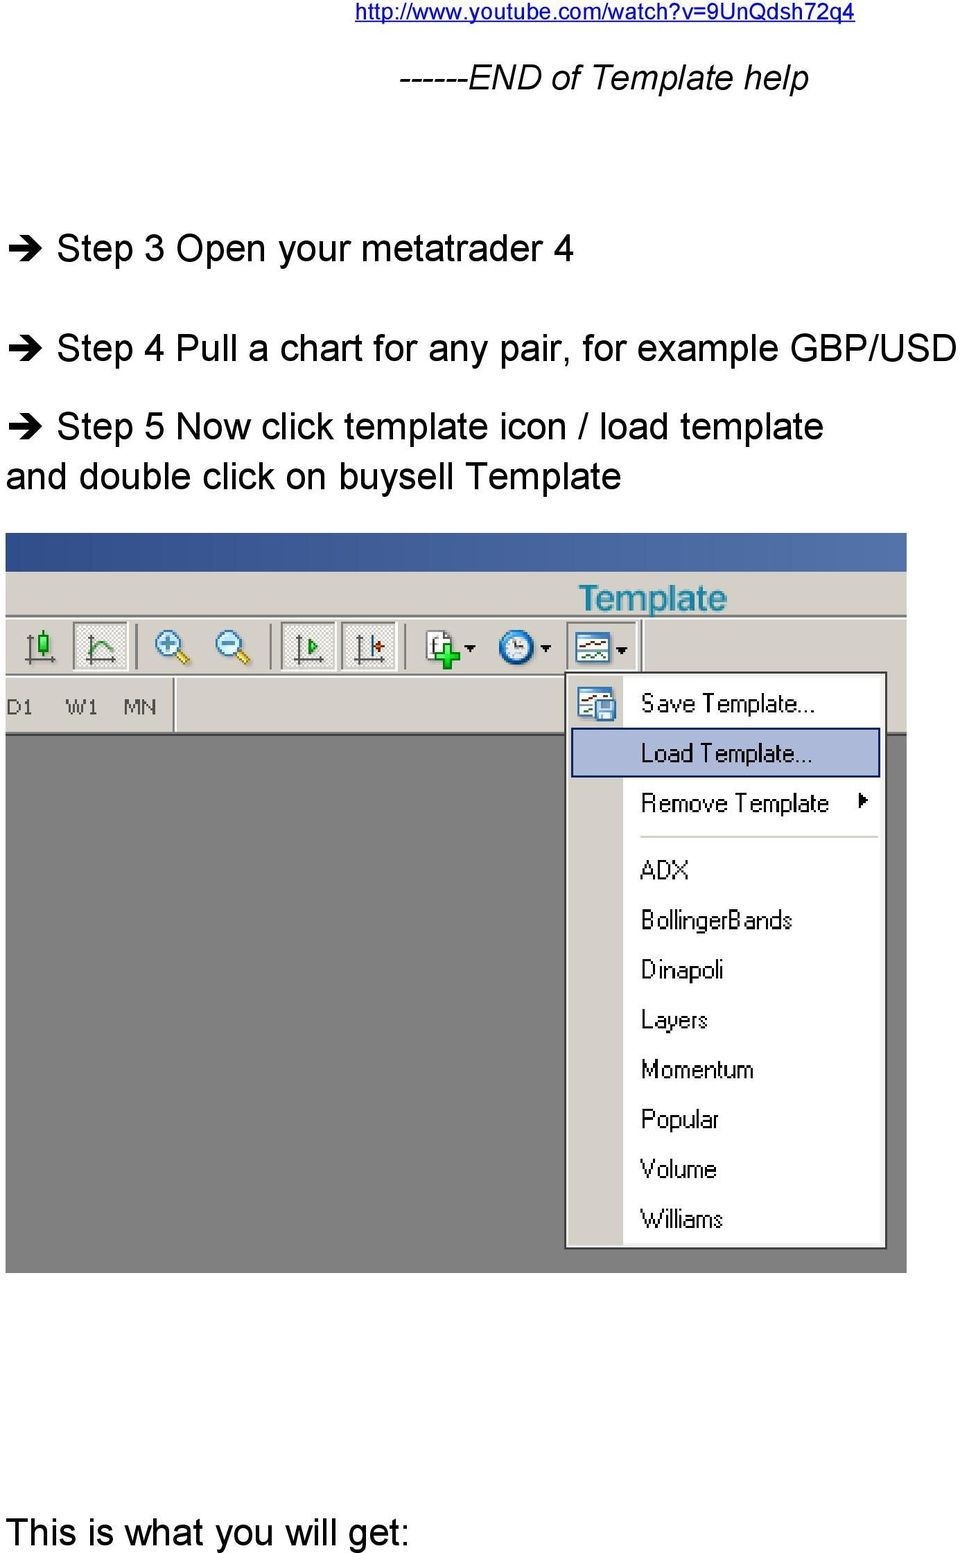 metatrader 4 Step 4 Pull a chart for any pair, for example